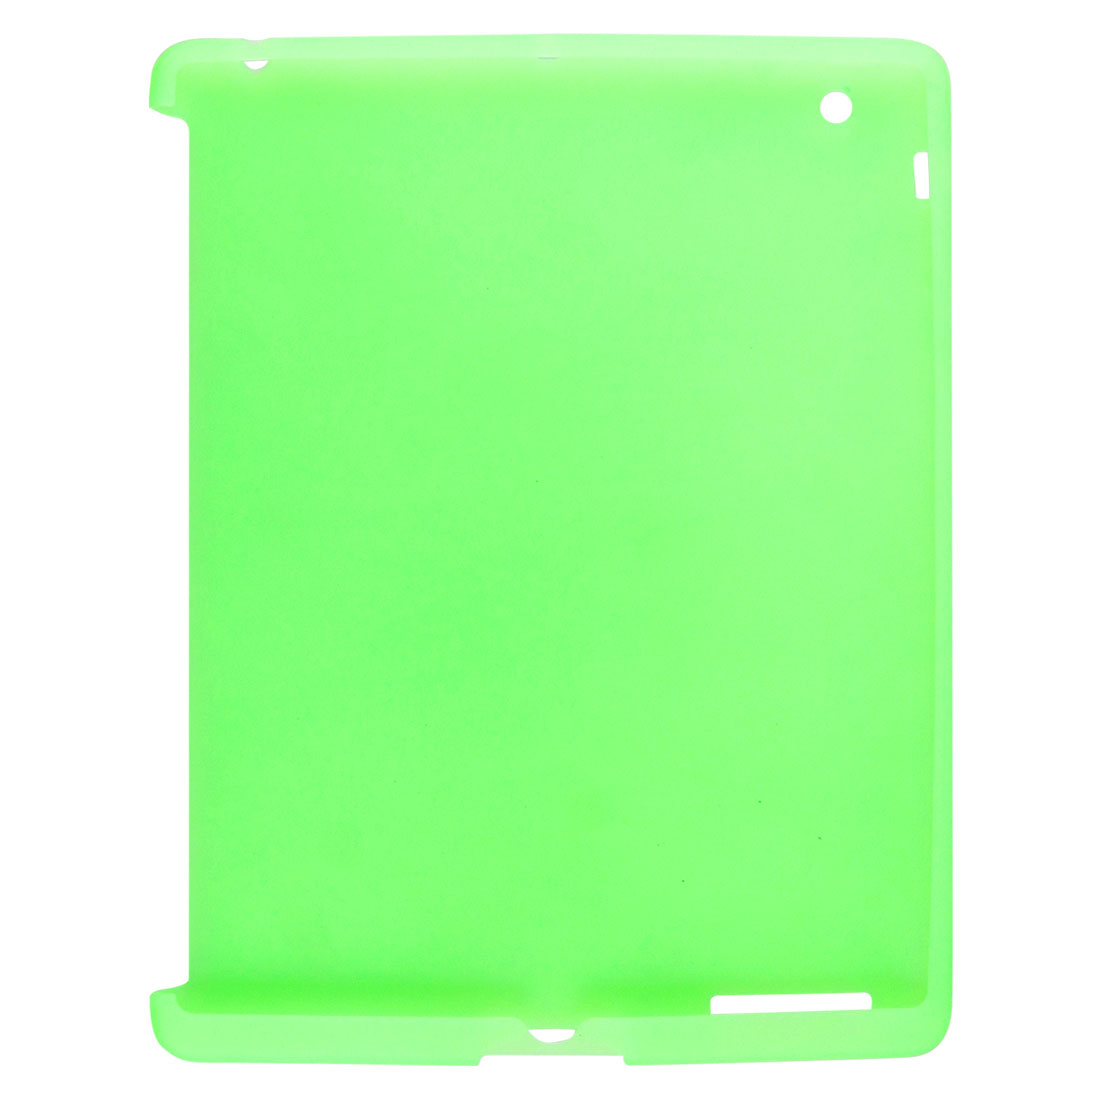 Green Soft Silicone Case Skin Cover for Apple iPad 3